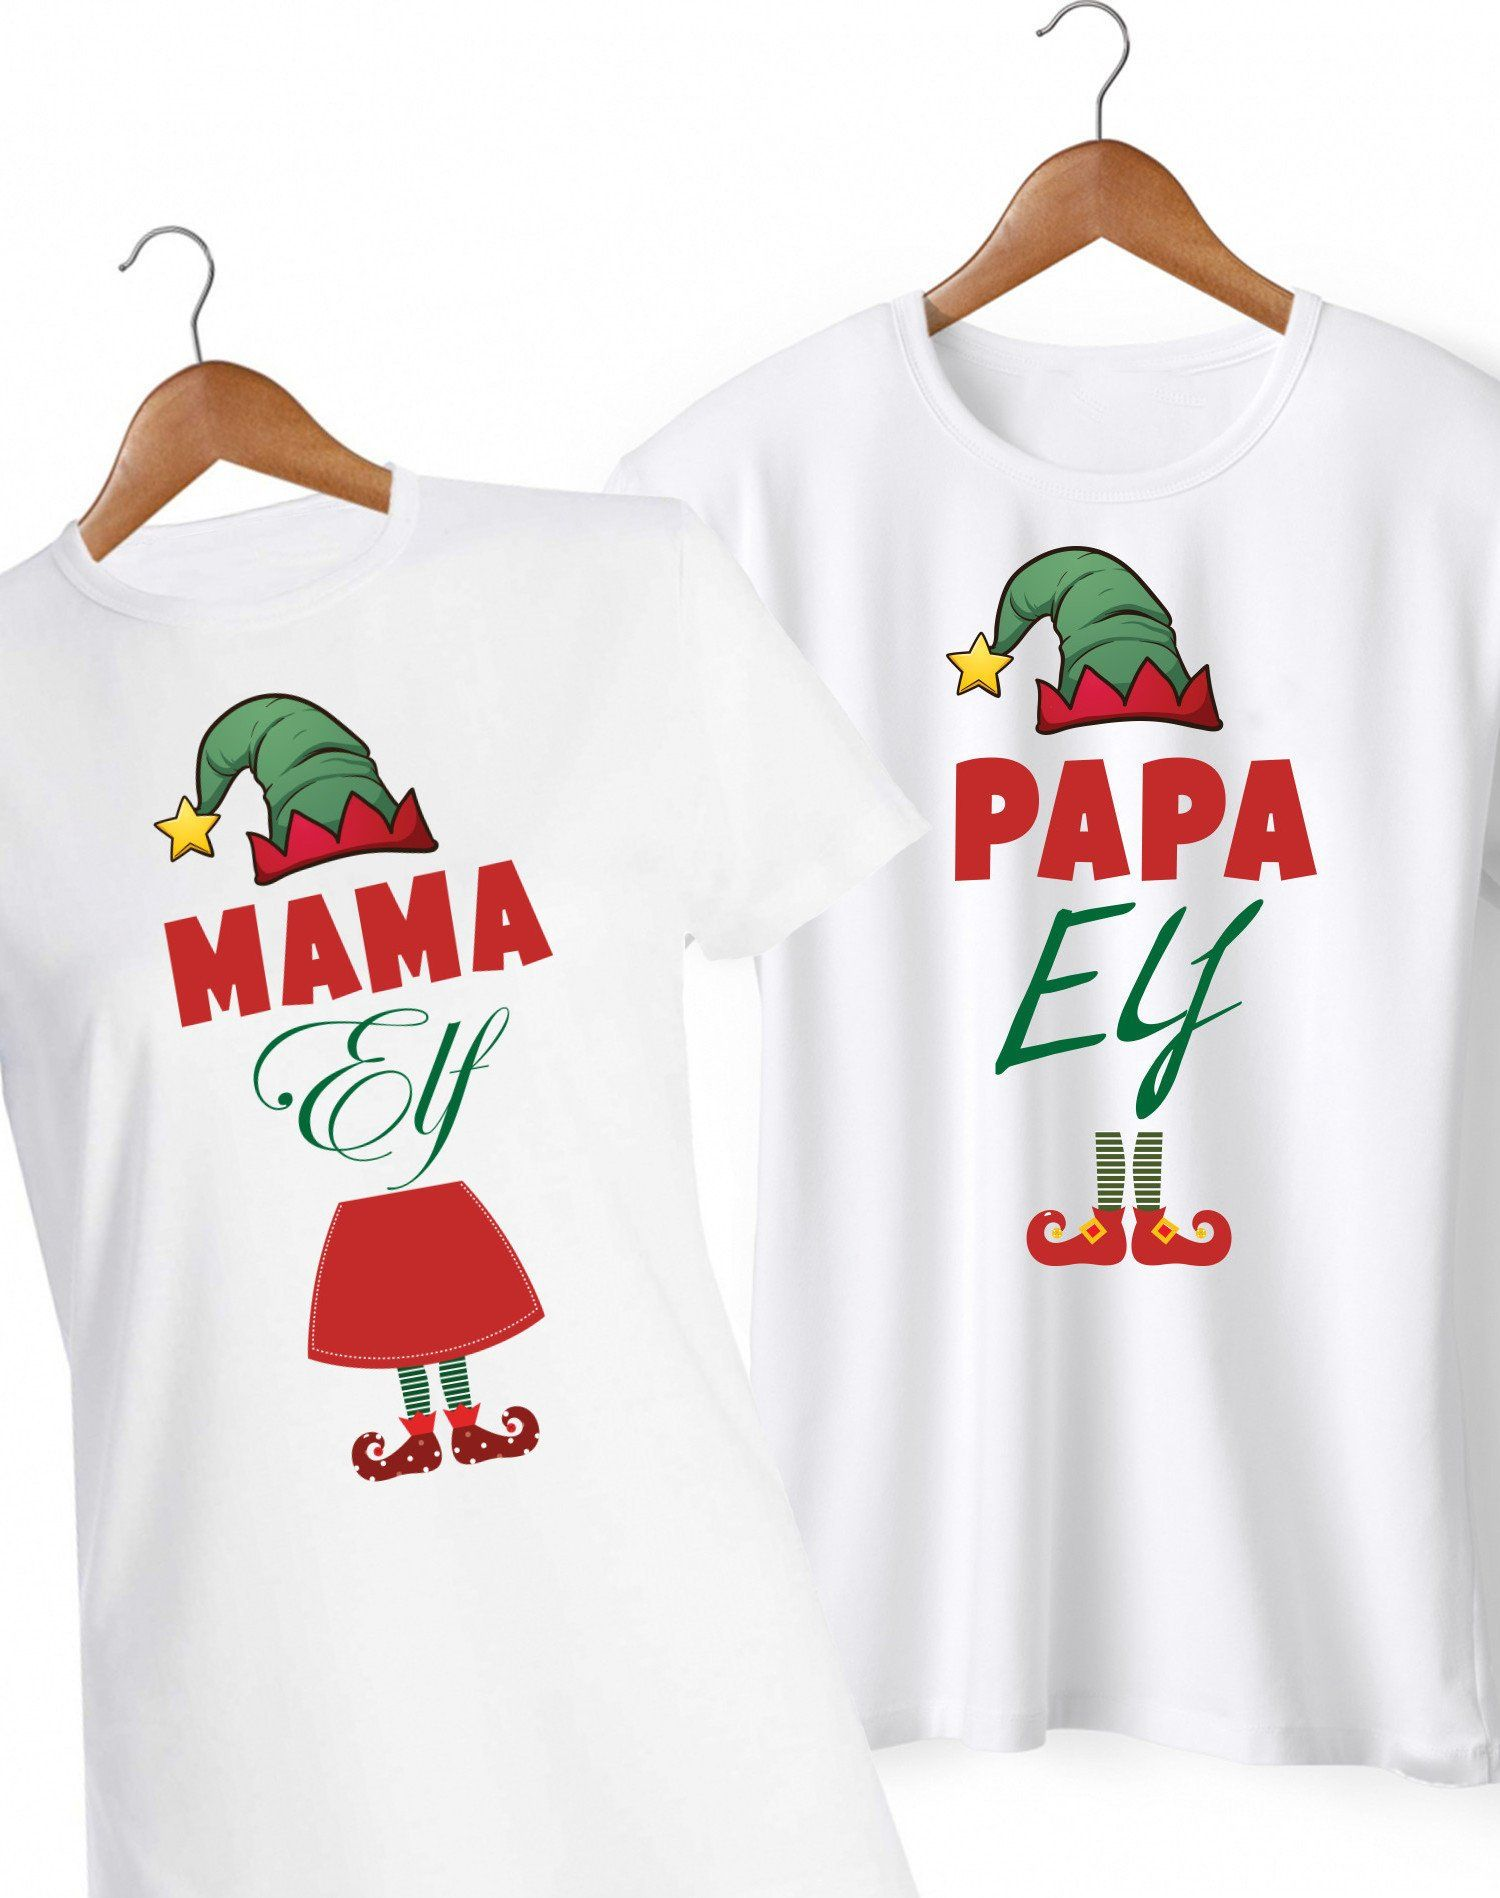 Elf family matching christmas gift shirts family elf shirts mama jpg  1500x1898 Mama elf 70ee4861d